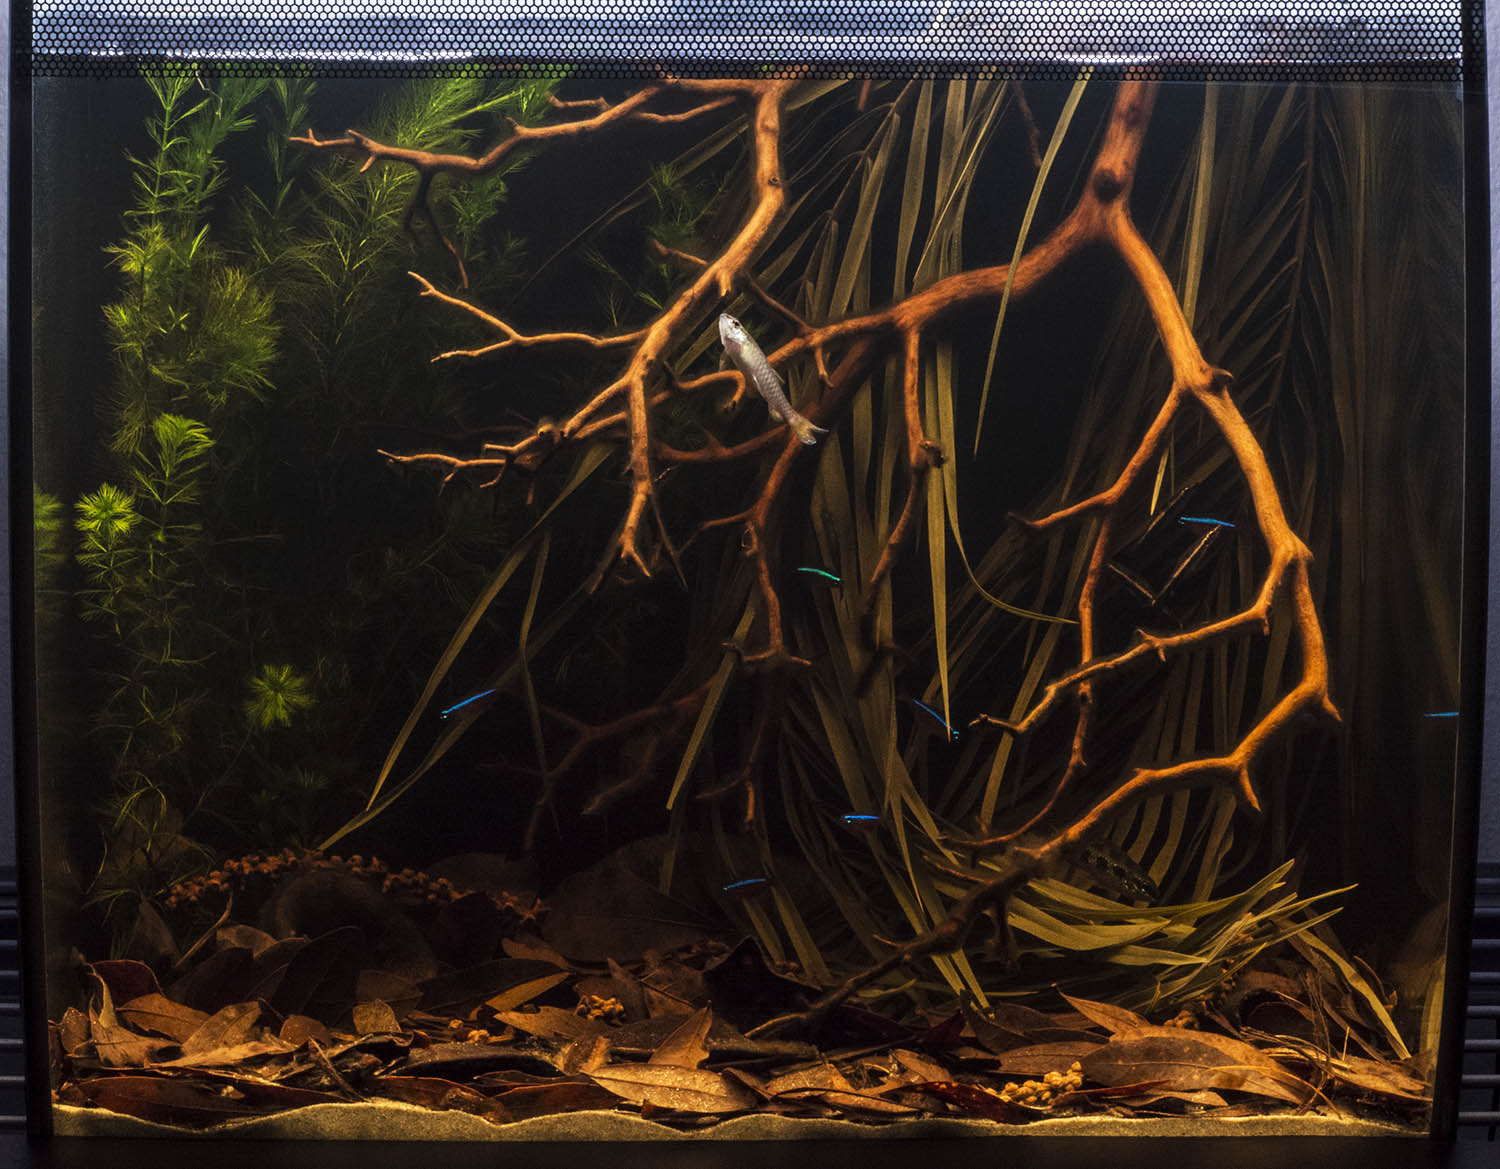 The finished aquarium contained all the elements that distinguish typical shallow-water igapó habitat in a natural-looking layout